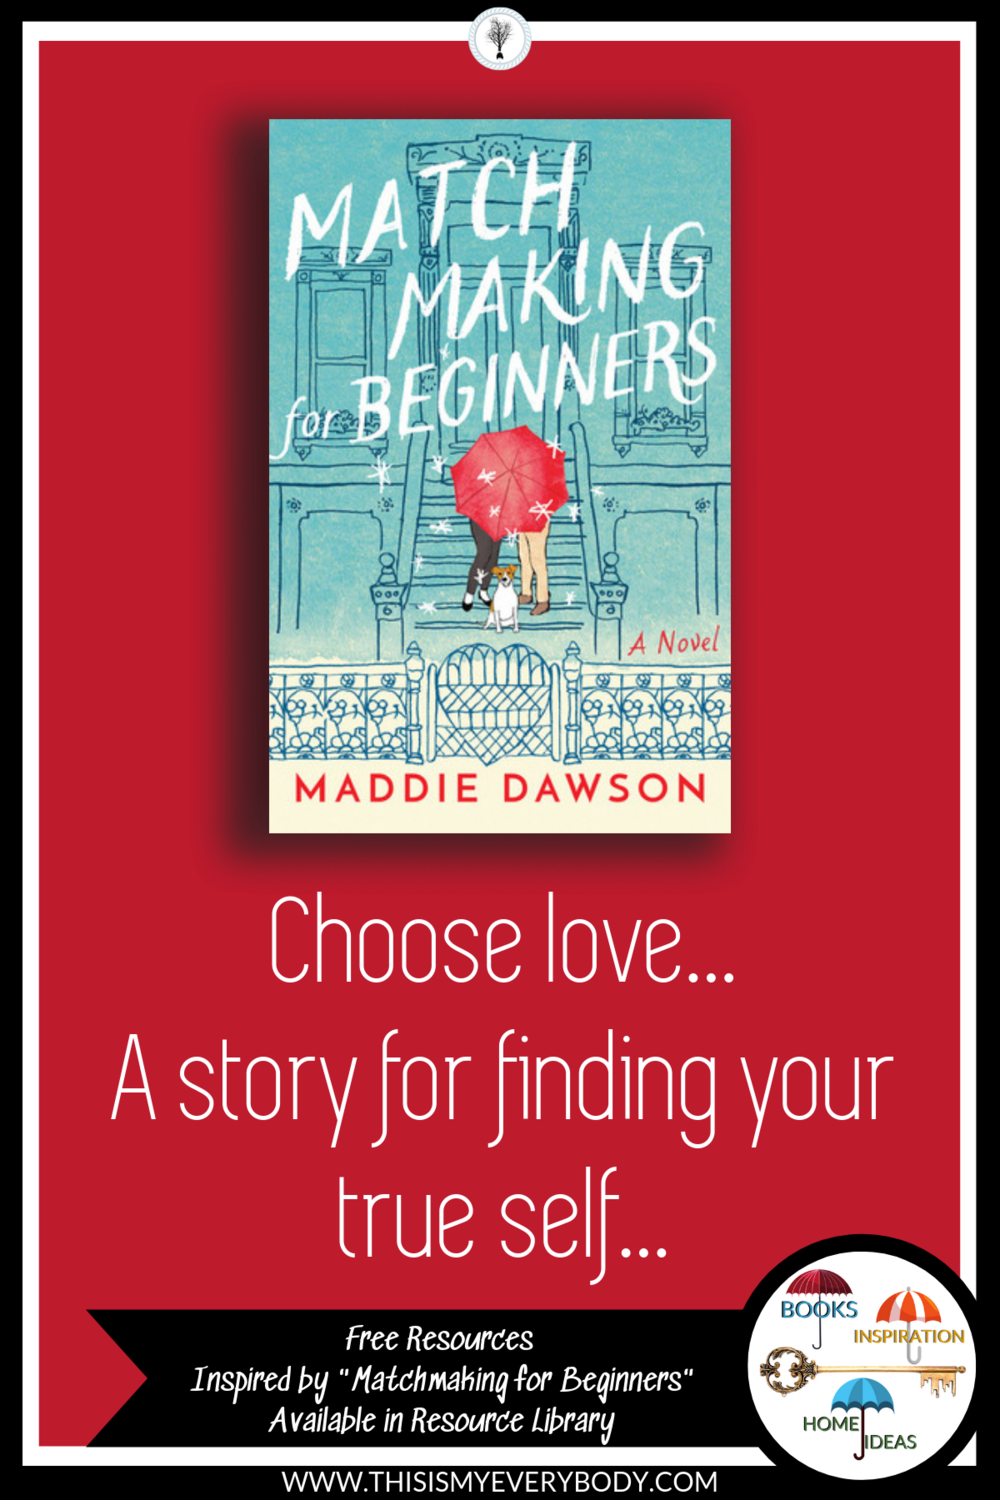 Matchmaking for Beginners - Maddie Dawson — T I M E  | This